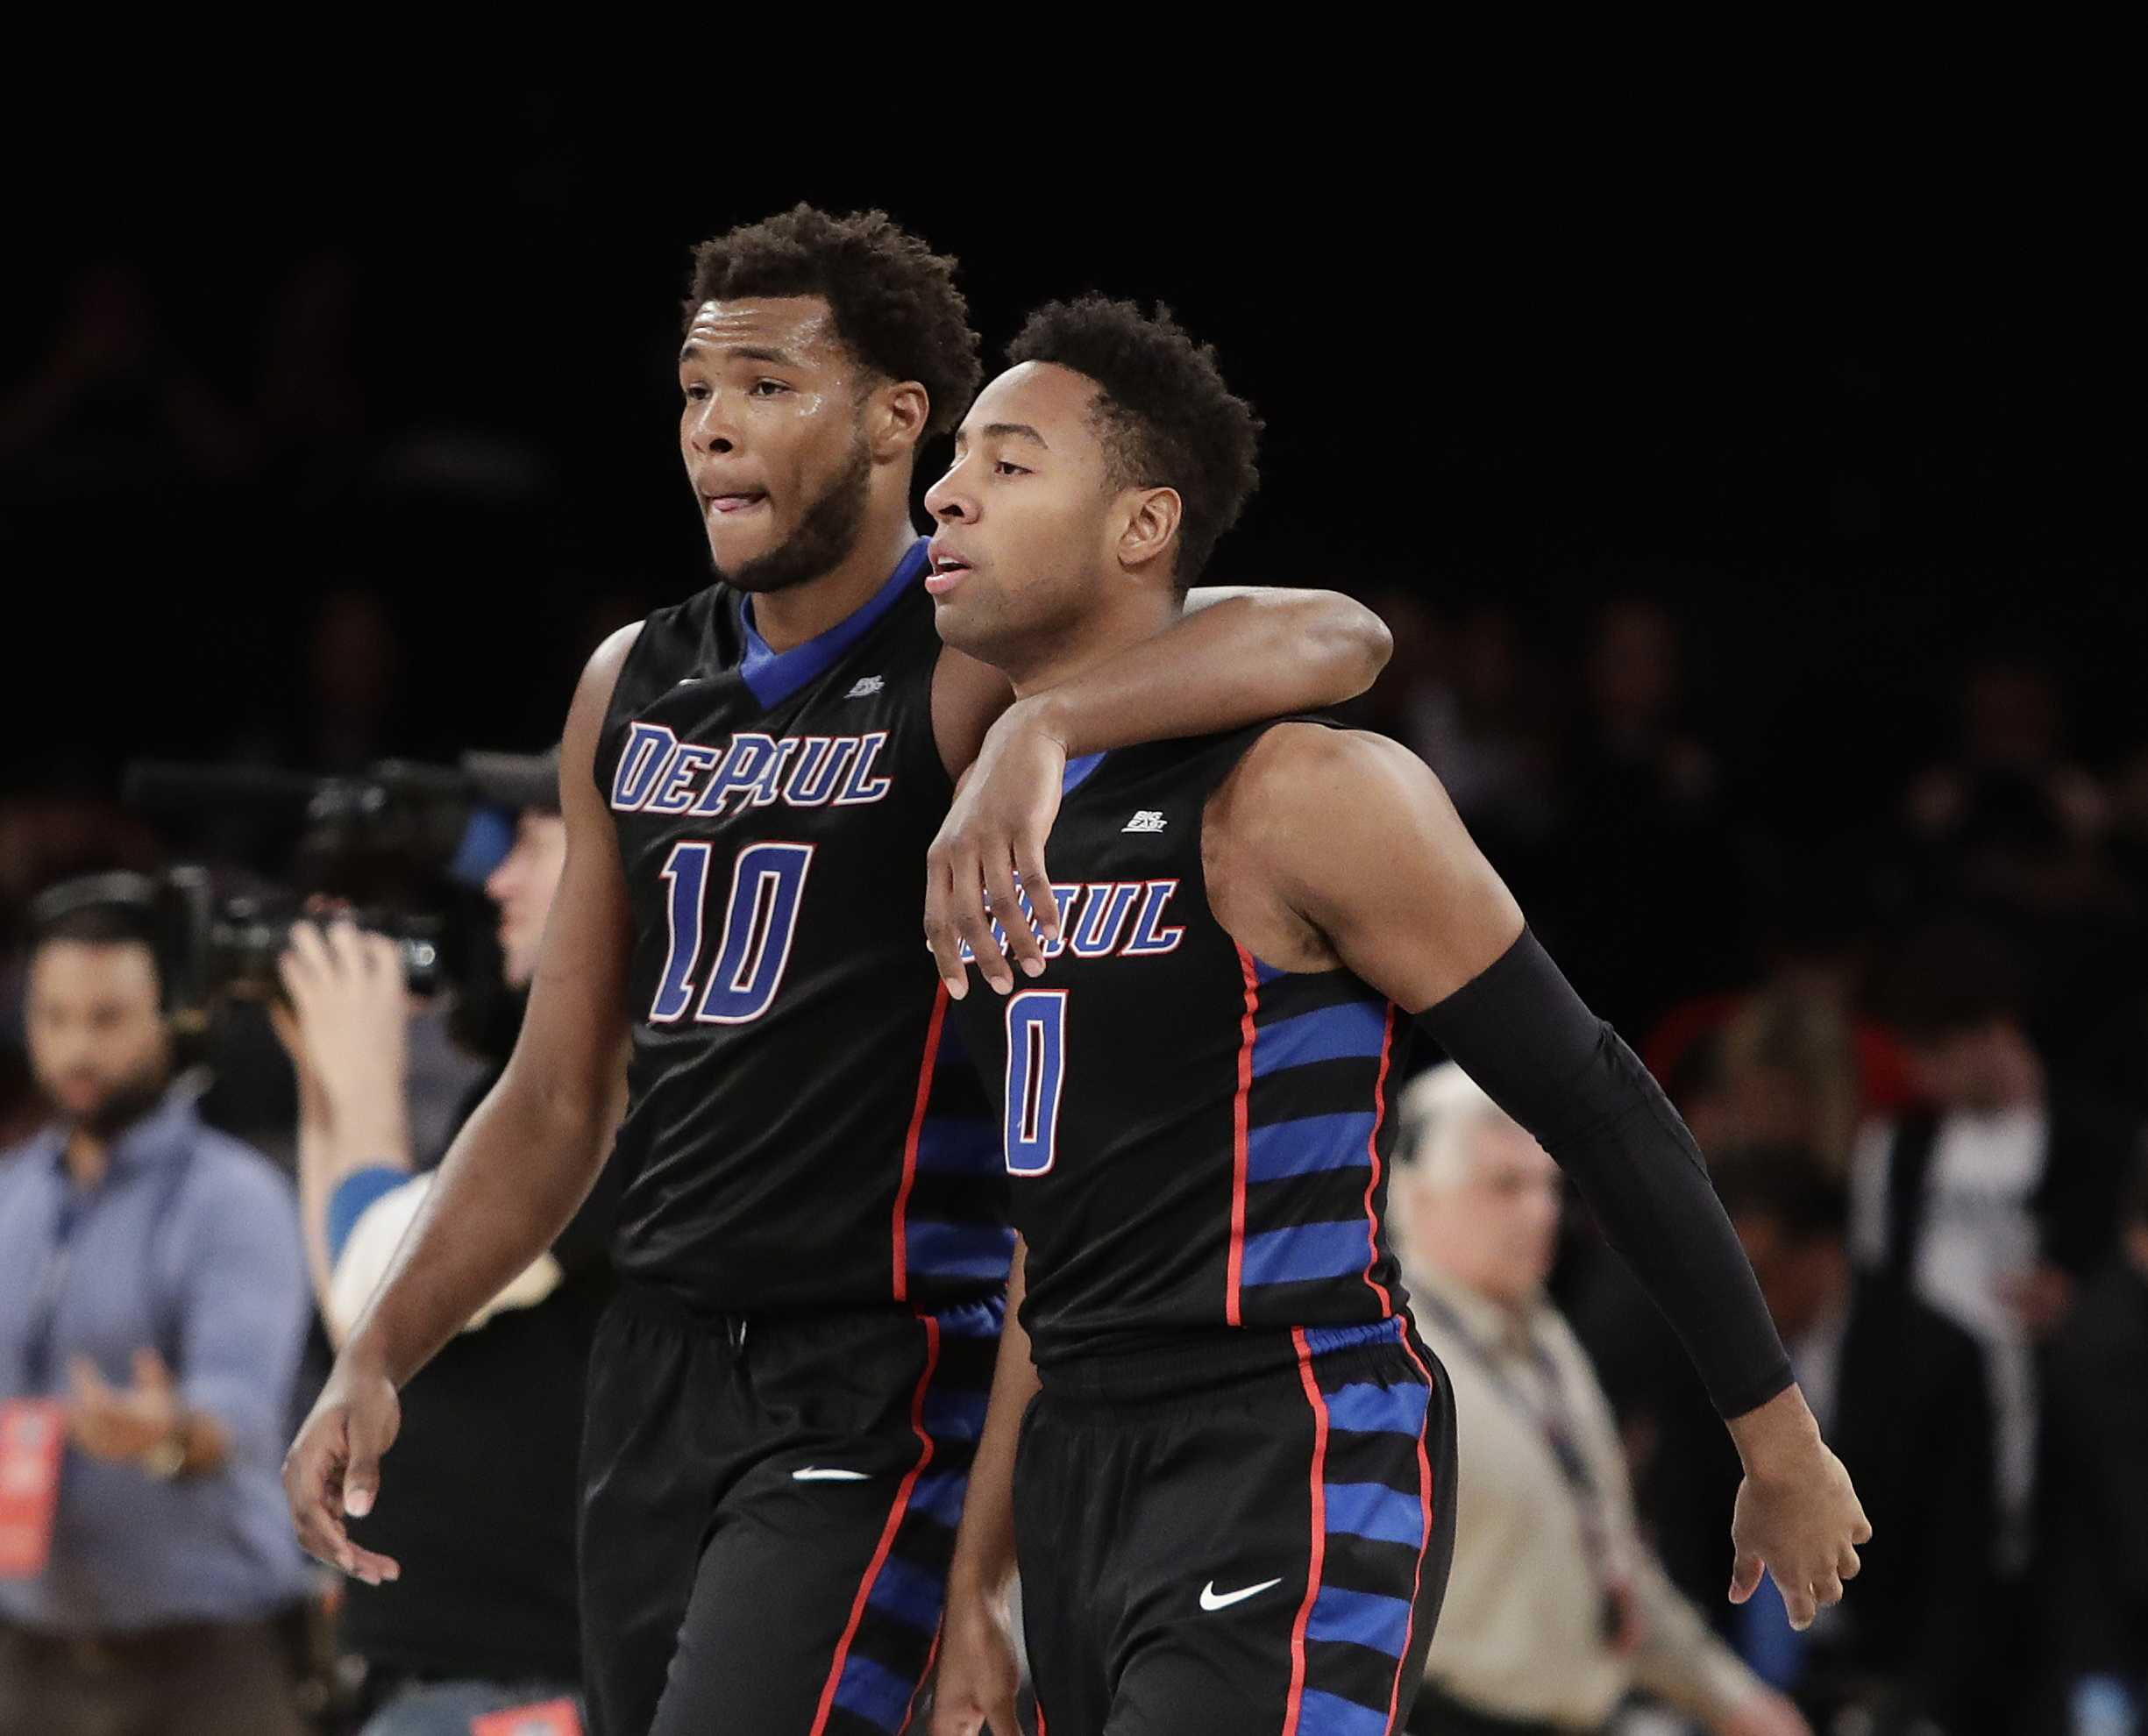 DePaul's Tre'Darius McCallum (10) and R.J. Curington (0) leave the court after the team's NCAA college basketball game against Xavier during the Big East men's tournament Wednesday, March 8, 2017, in New York. Xavier won 75-64. (AP Photo/Frank Franklin II)